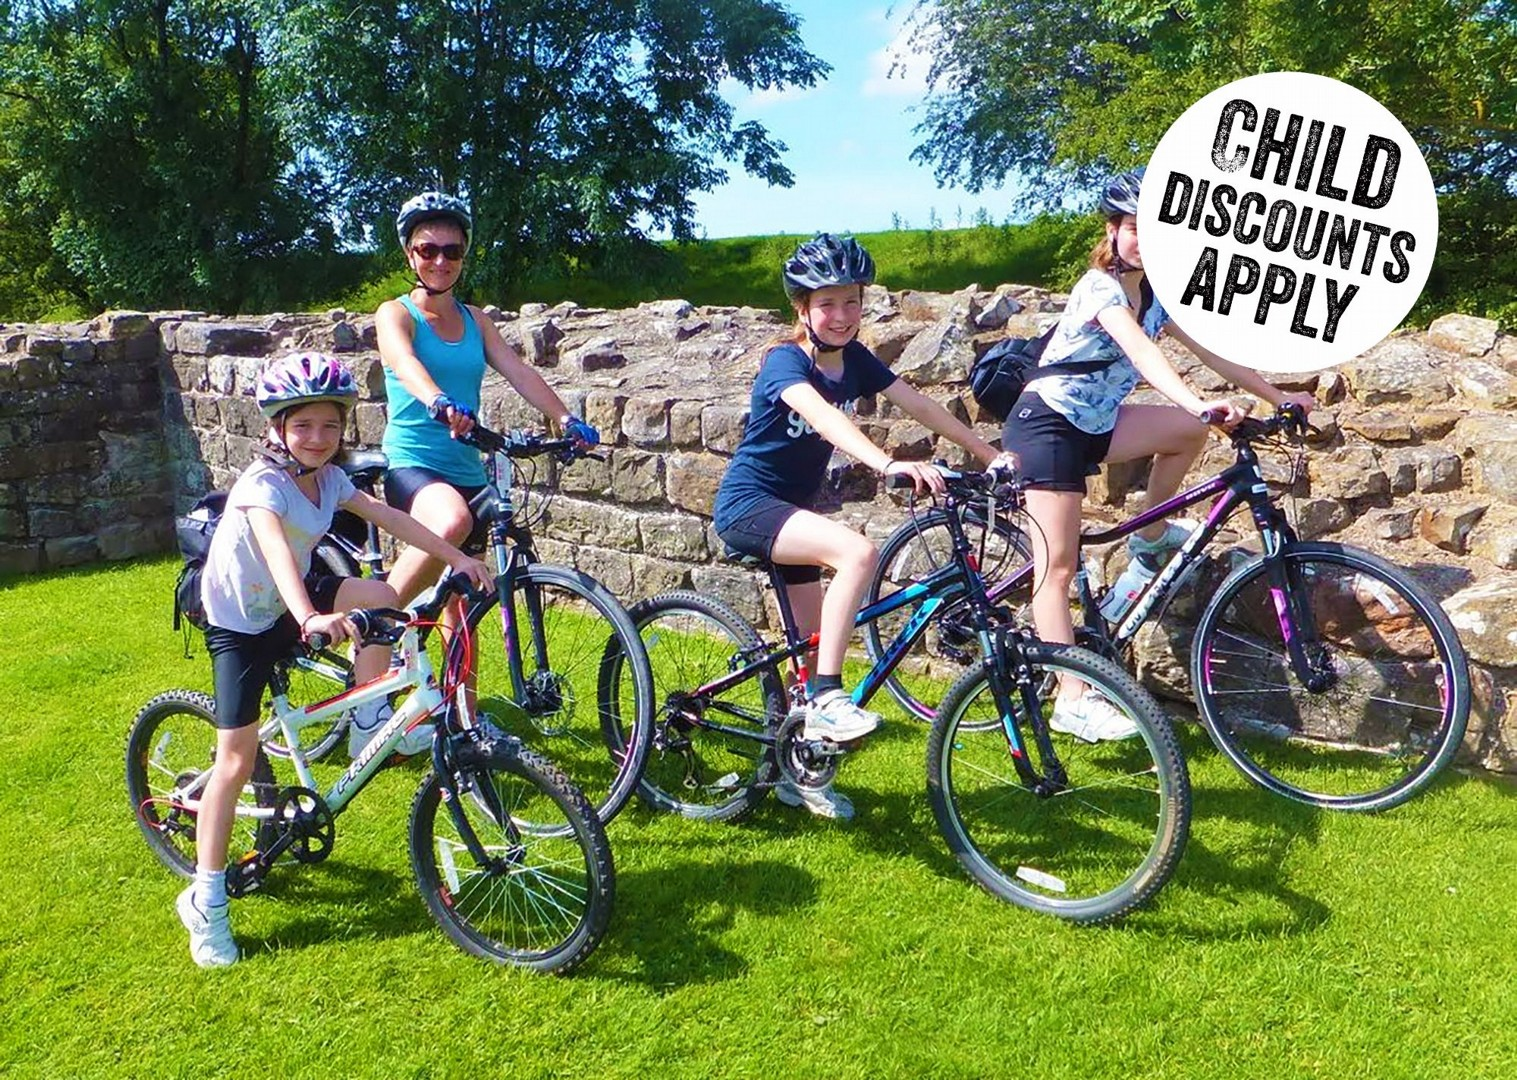 UK - Hadrian's Cycleway - 6 Days Cycling - Self-Guided Family Cycling Holiday copy.jpg - UK - Hadrian's Cycleway - 6 Days - Family Cycling